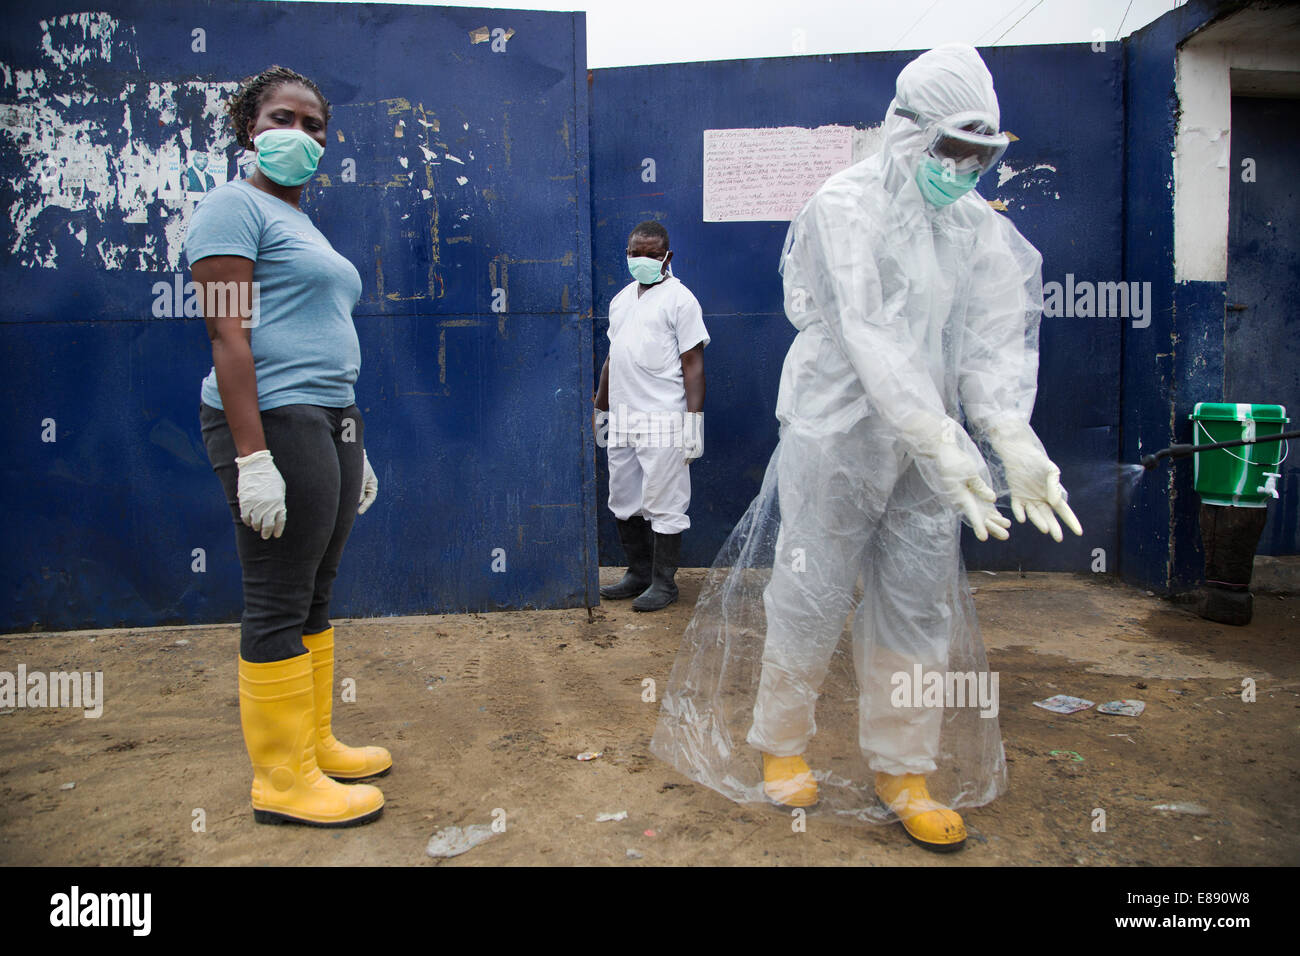 Three people represent different levels of PPE in West Point. West Point is a district of Monrovia Liberia quarantined - Stock Image